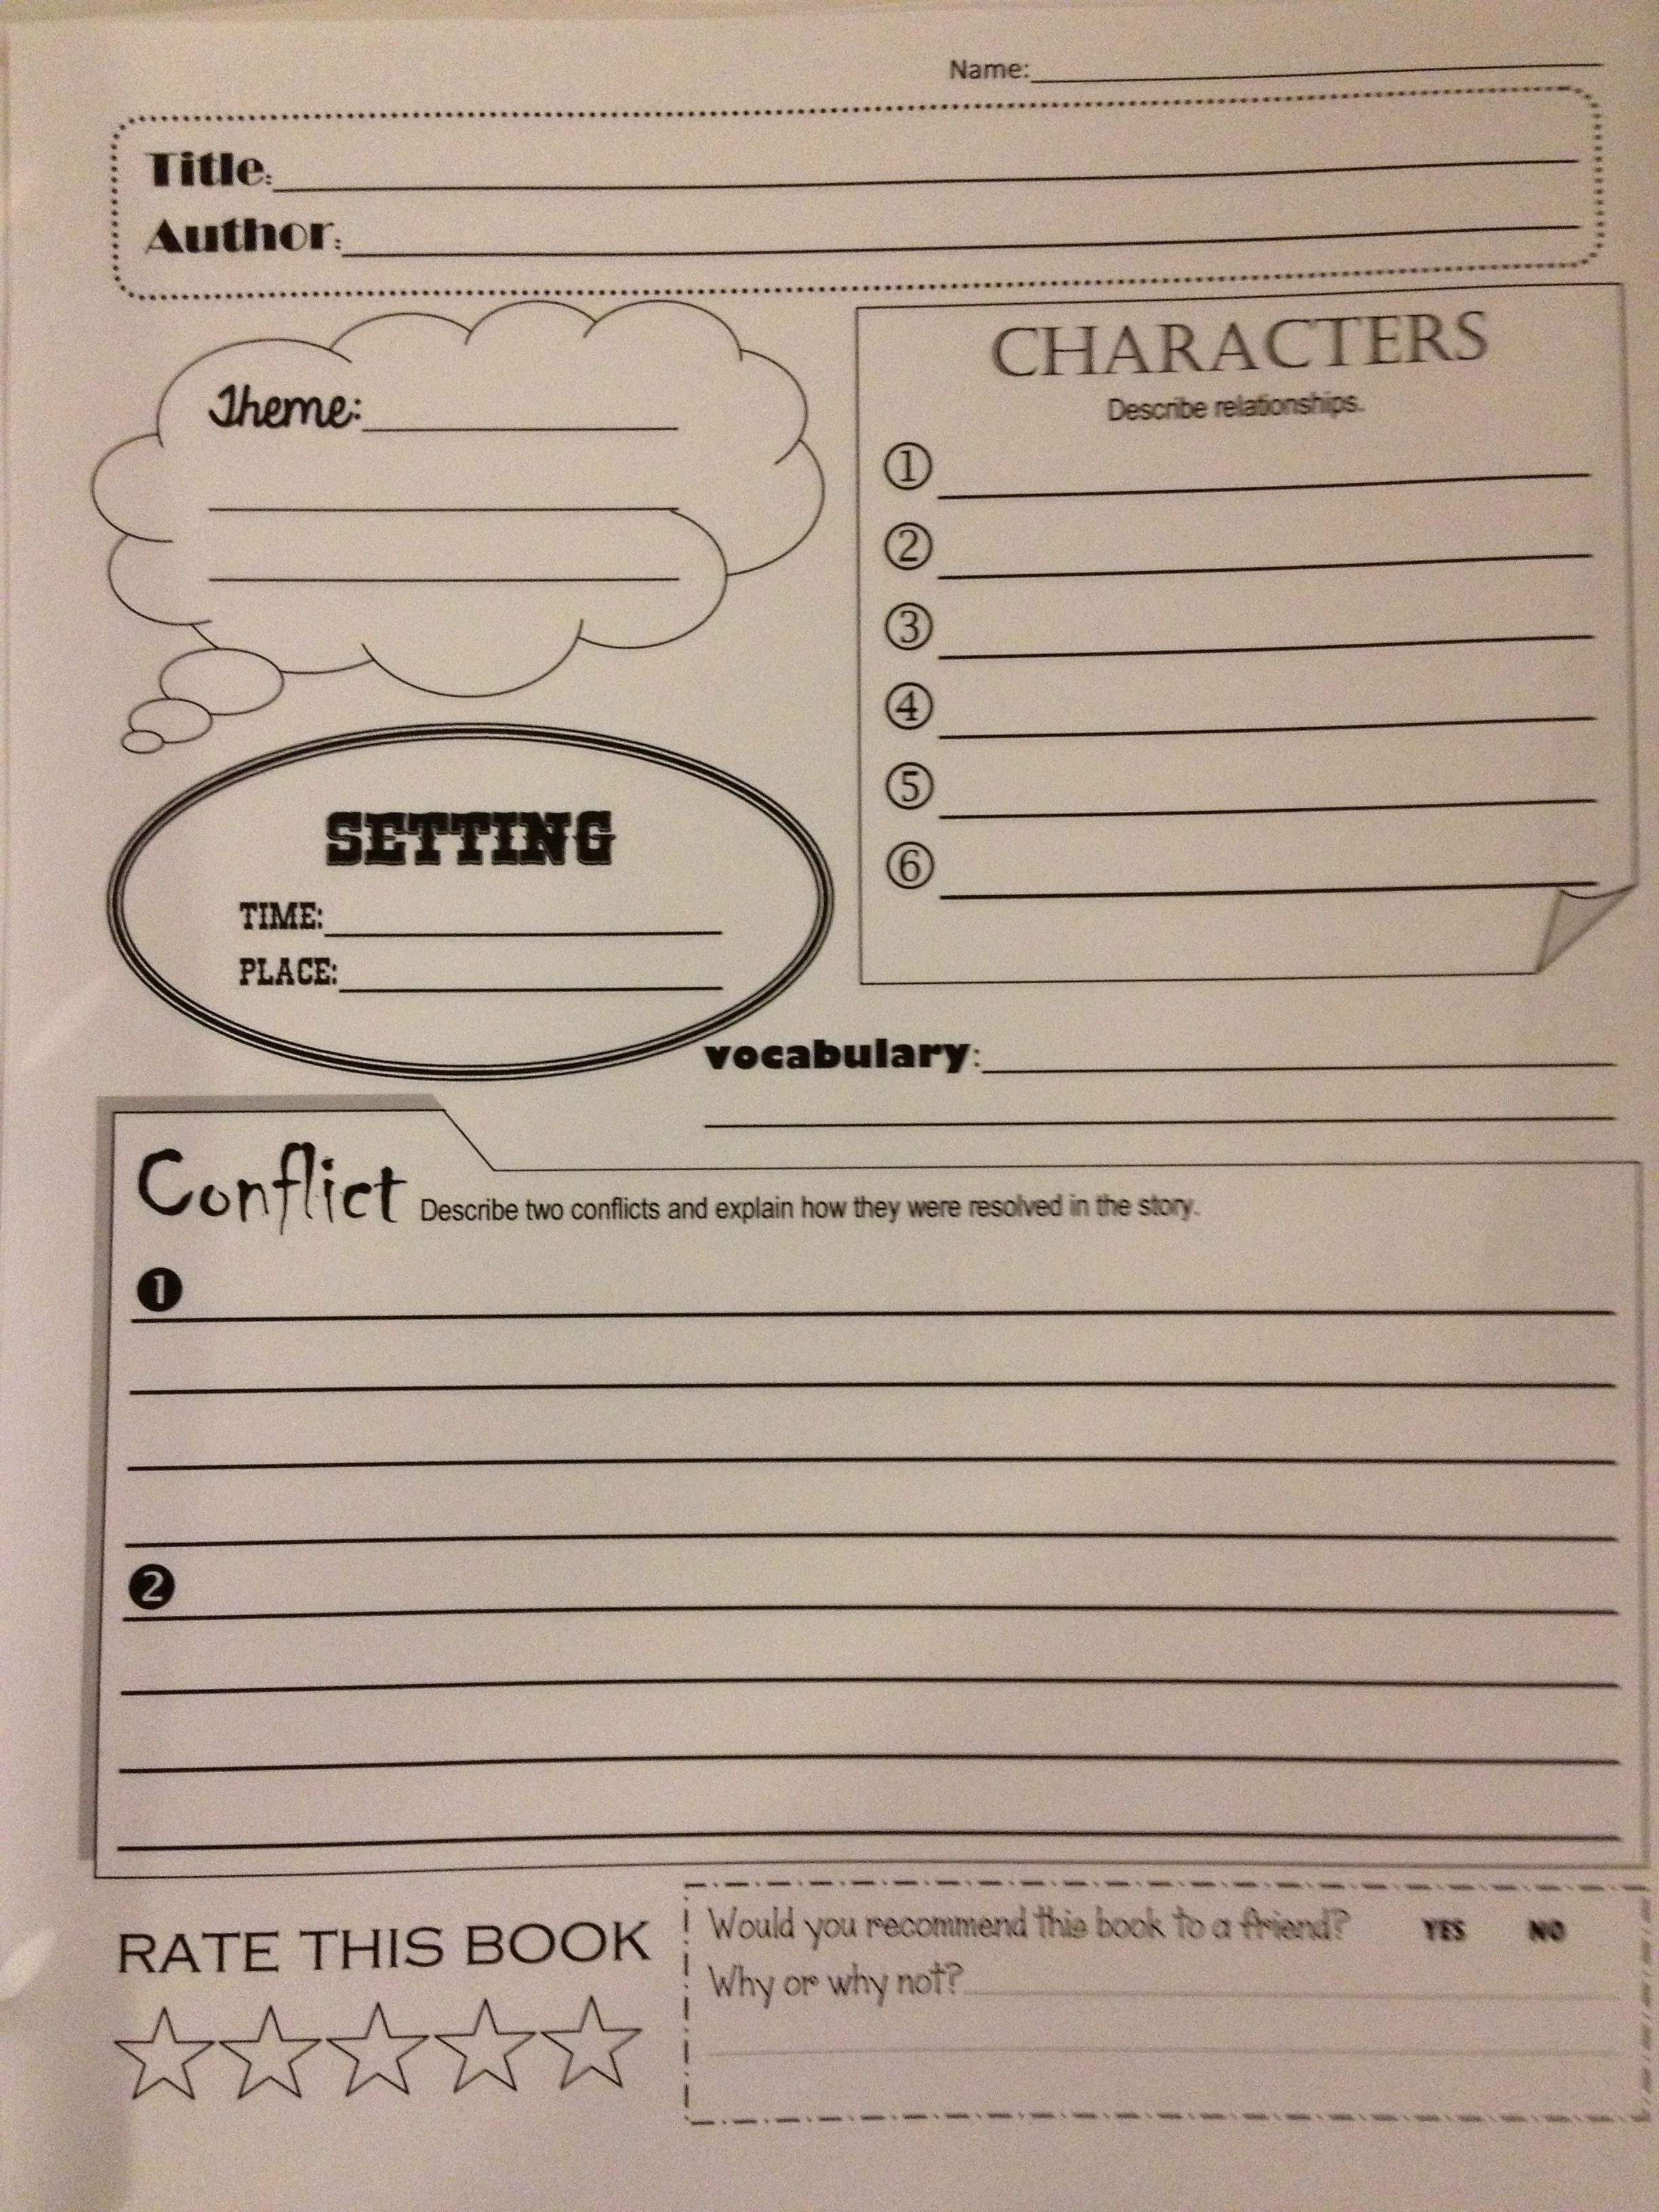 Book Title Worksheets : Simple book report form help kids review story before test